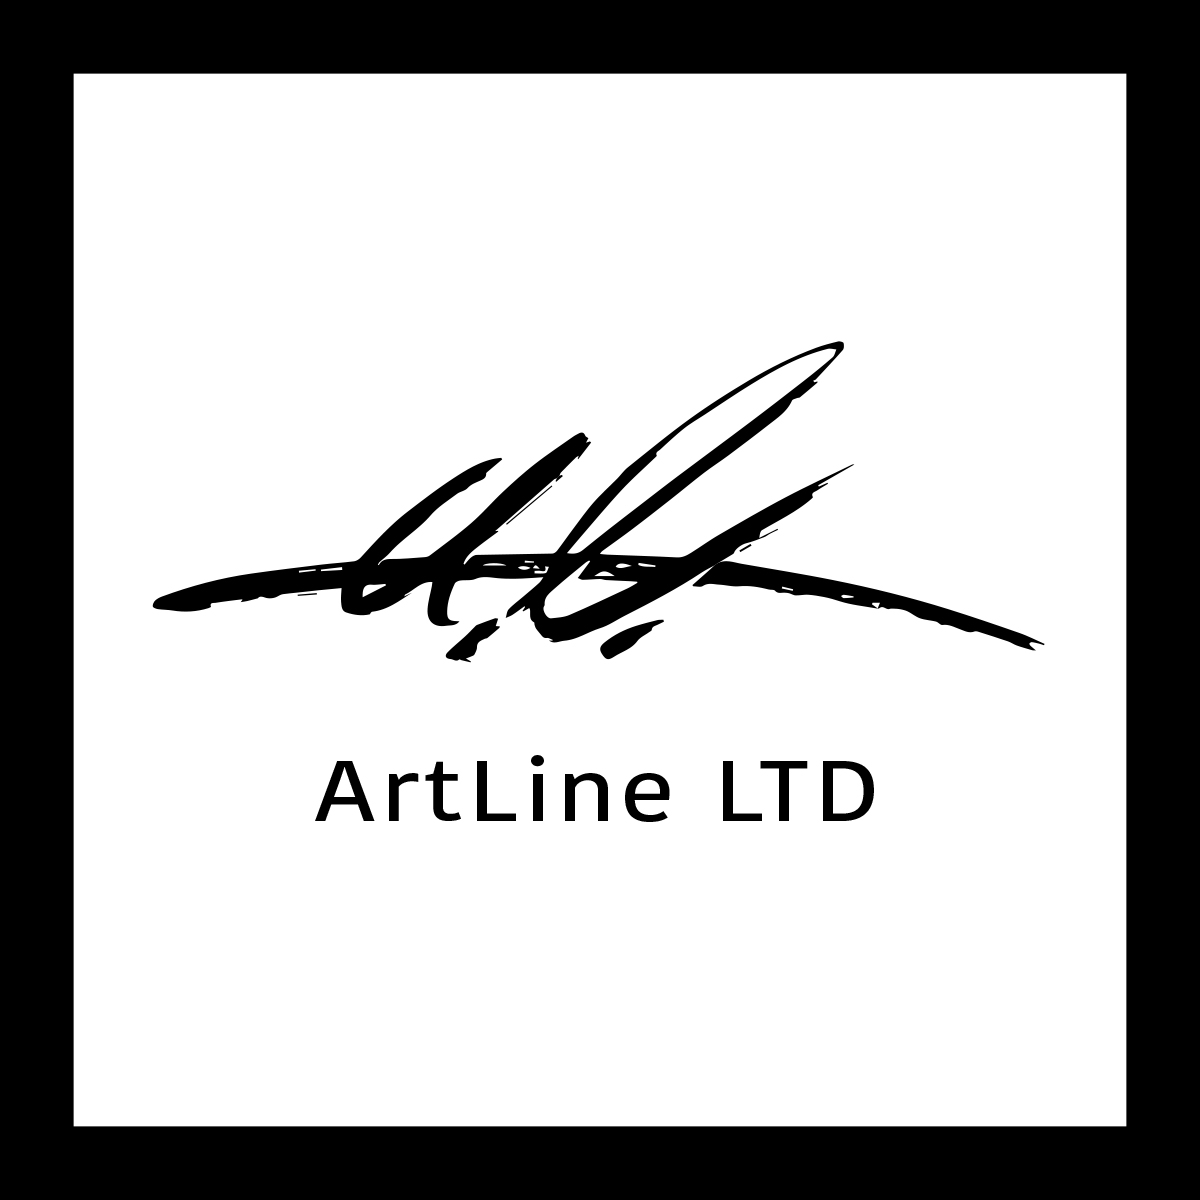 WILLIAM WELCH IS PROMOTED TO PRESIDENT OF ARTLINE, LTD